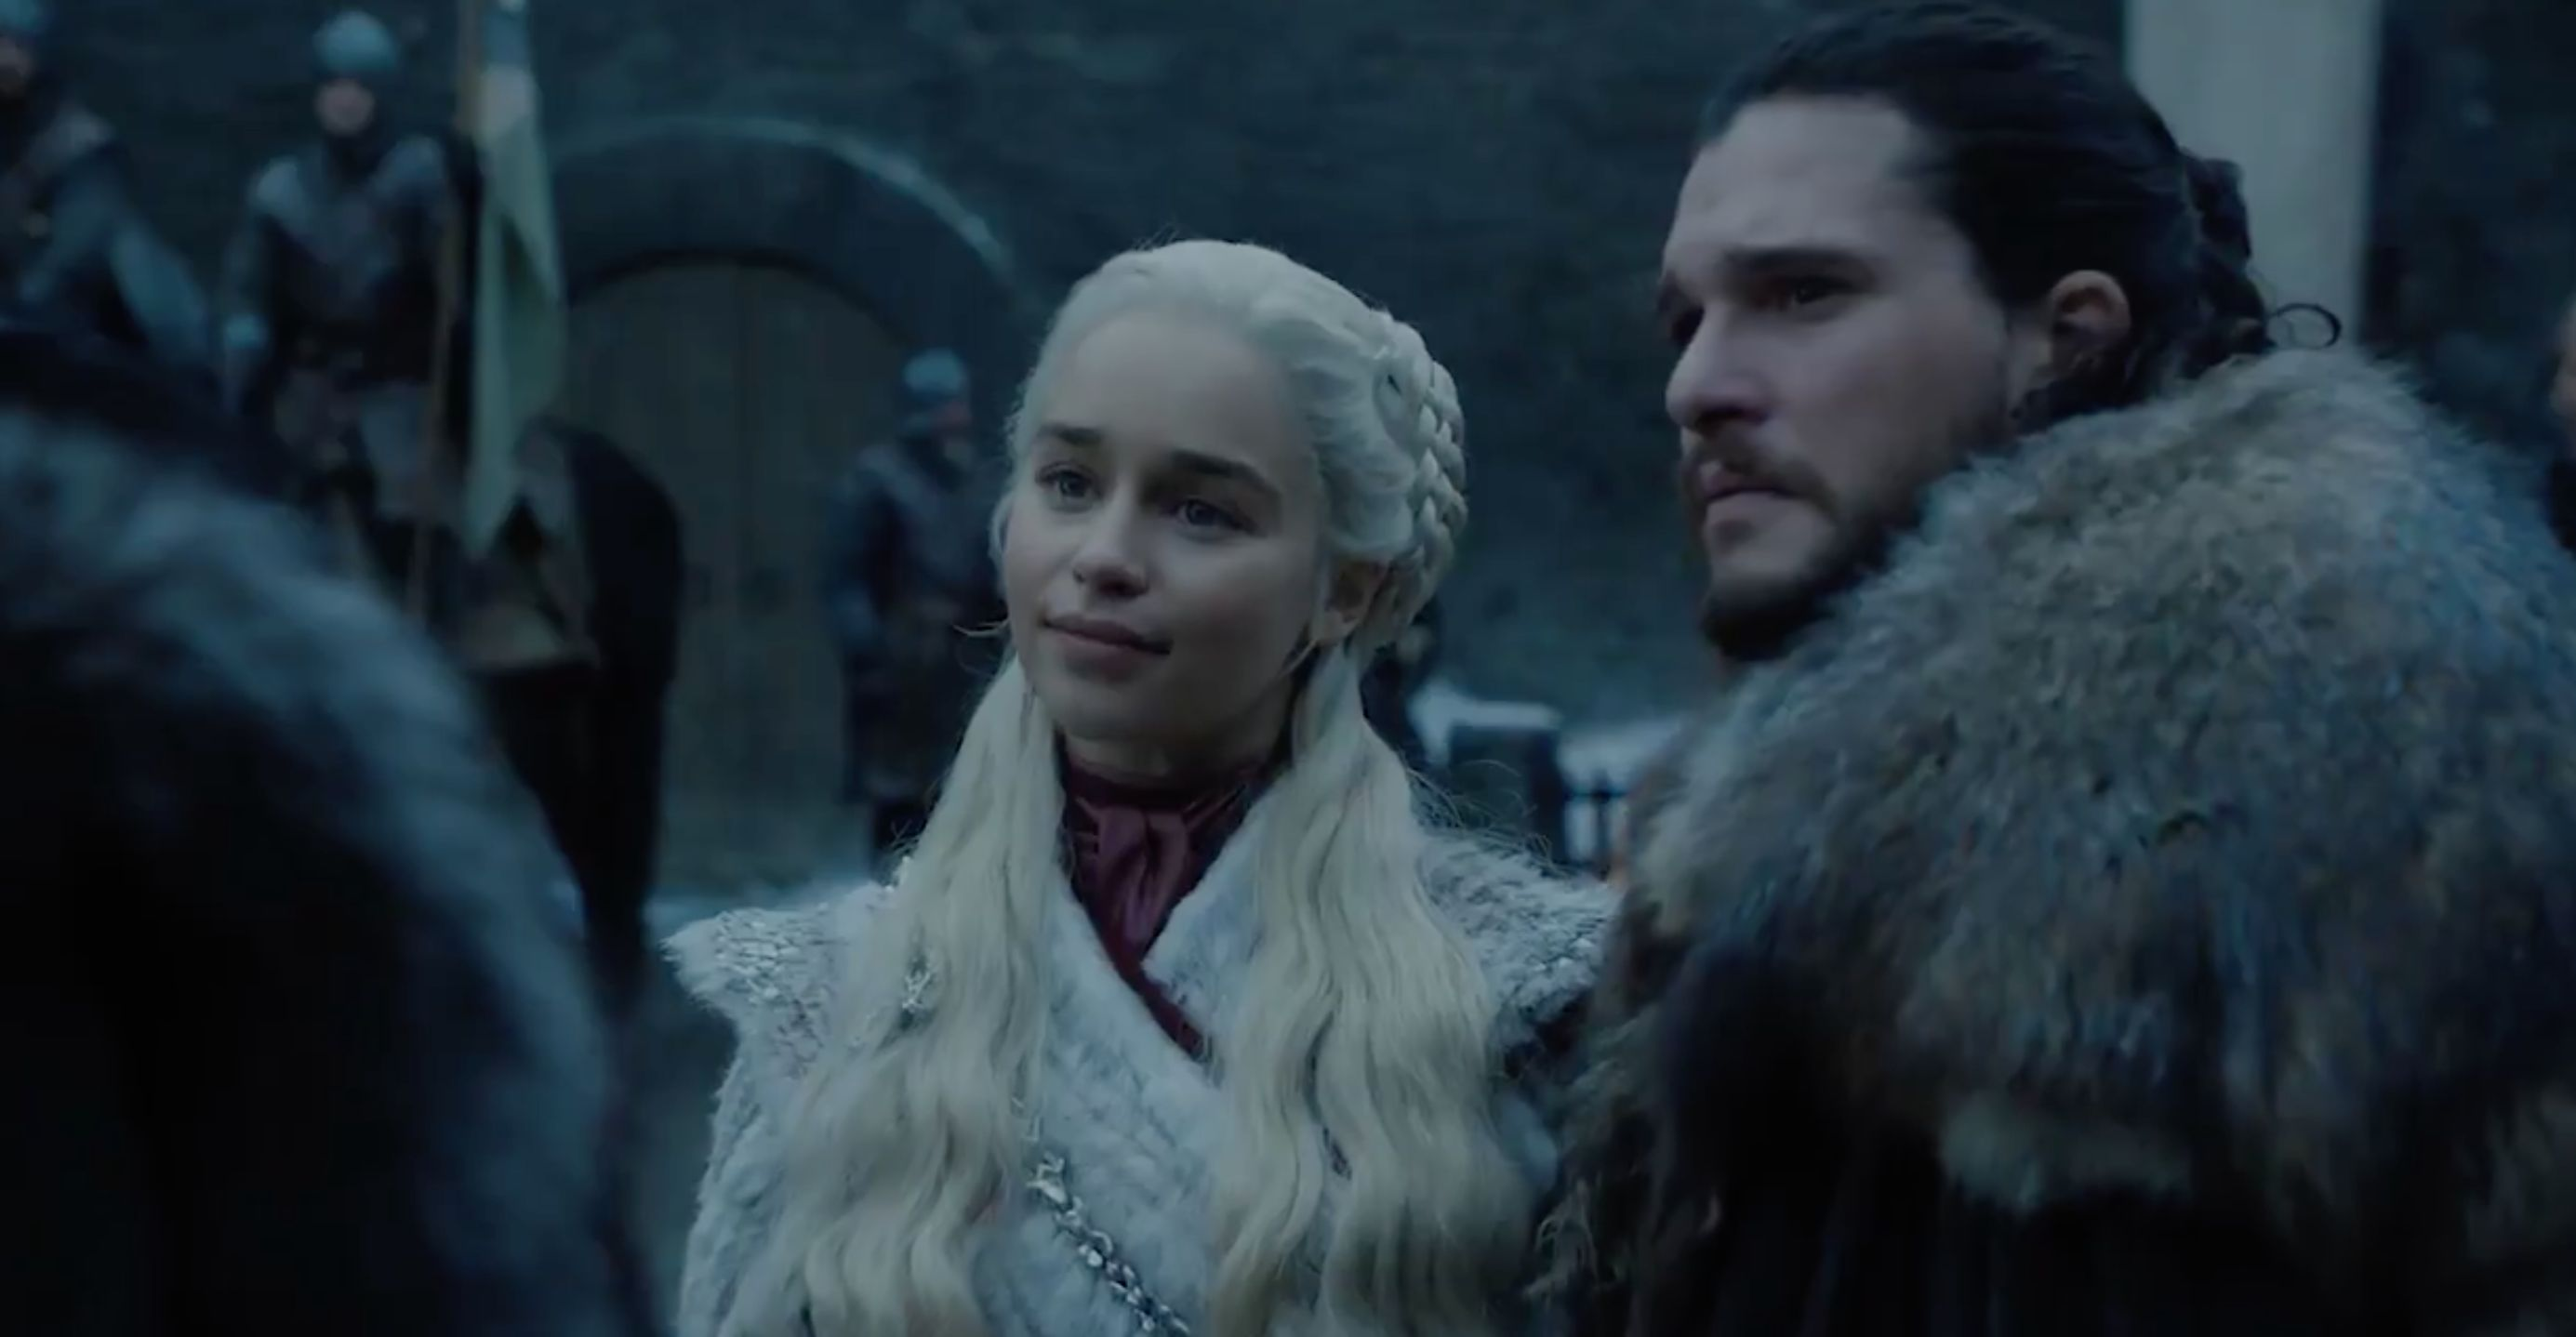 Daenerys meets Sansa in new footage from Game of Thrones!